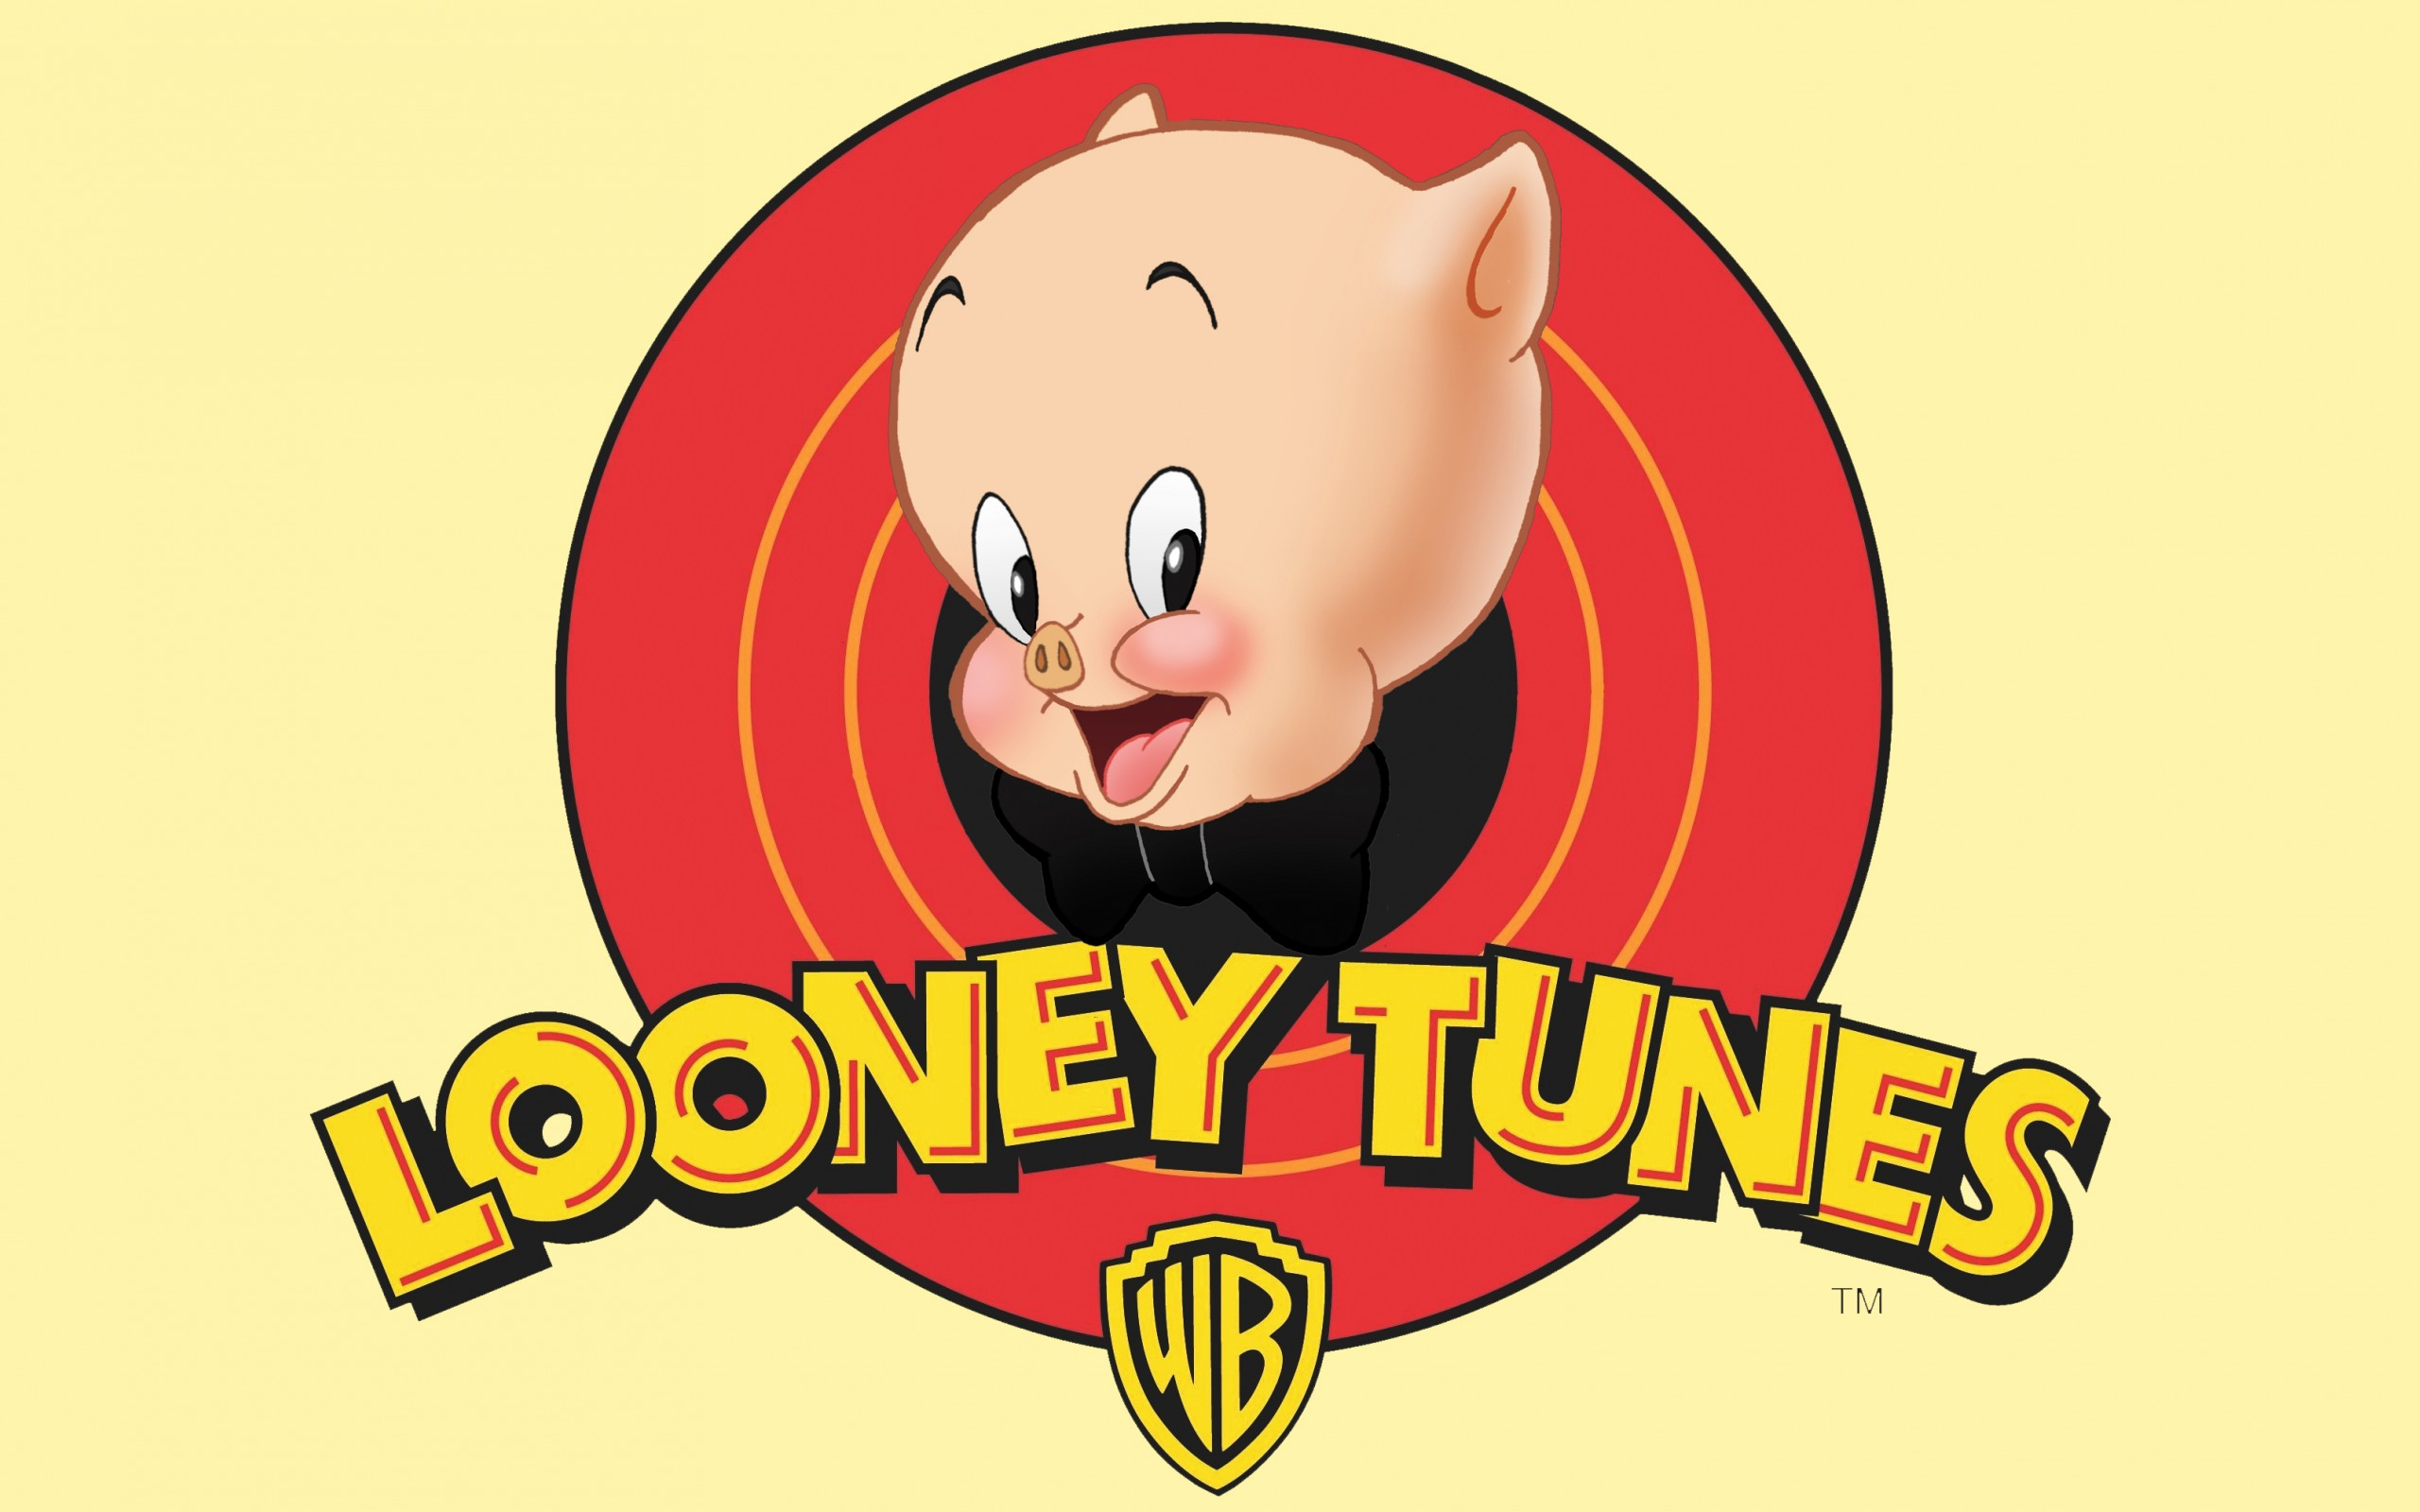 porky pig HD Wallpaper | Background Image | 2560x1600 | ID ...